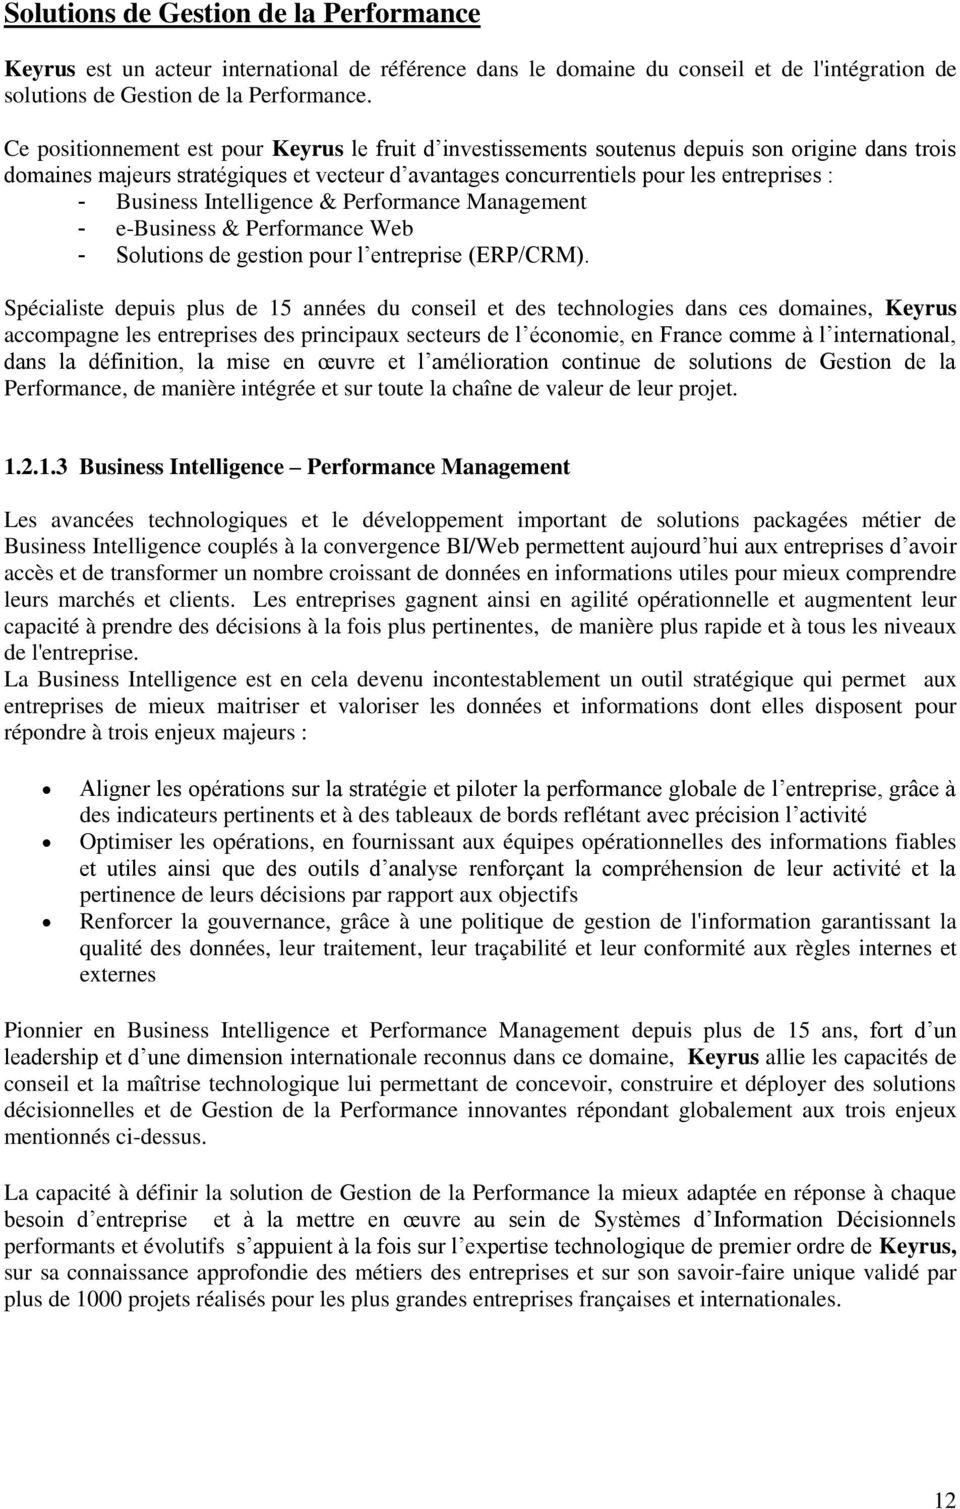 Business Intelligence & Performance Management - e-business & Performance Web - Solutions de gestion pour l entreprise (ERP/CRM).